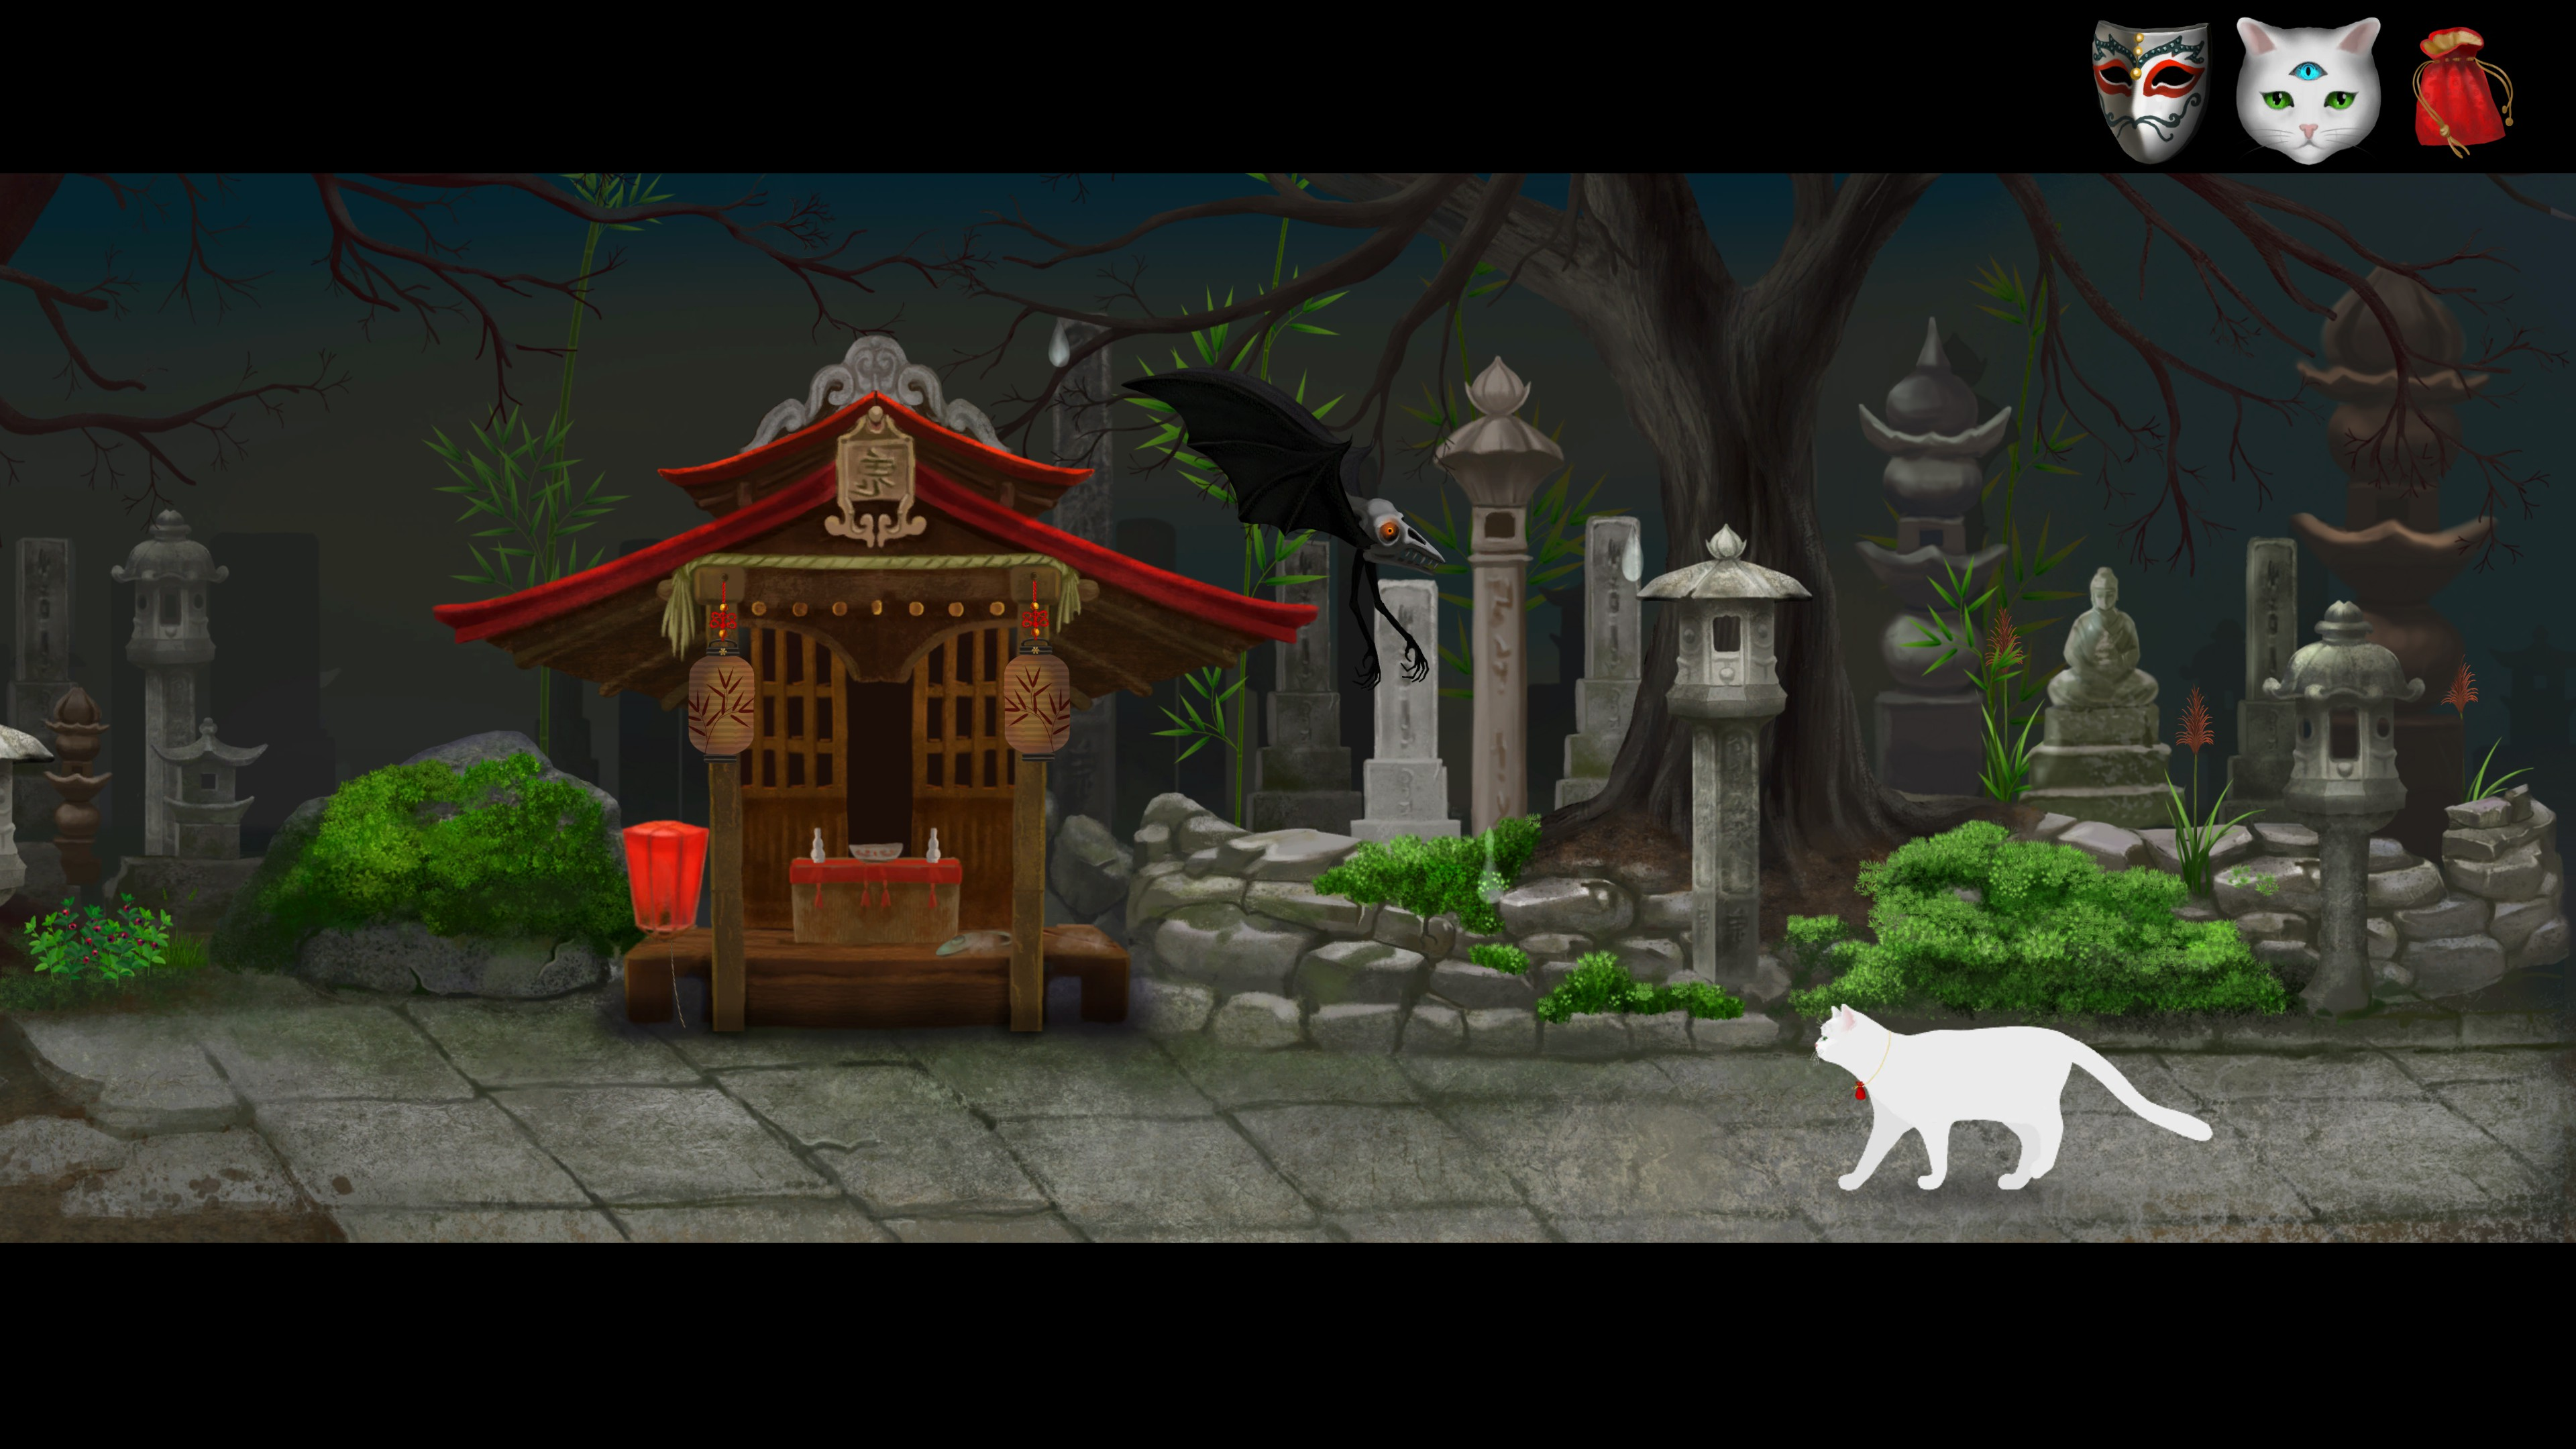 Cat and Ghostly Road. White cat in a graveyard with shrine